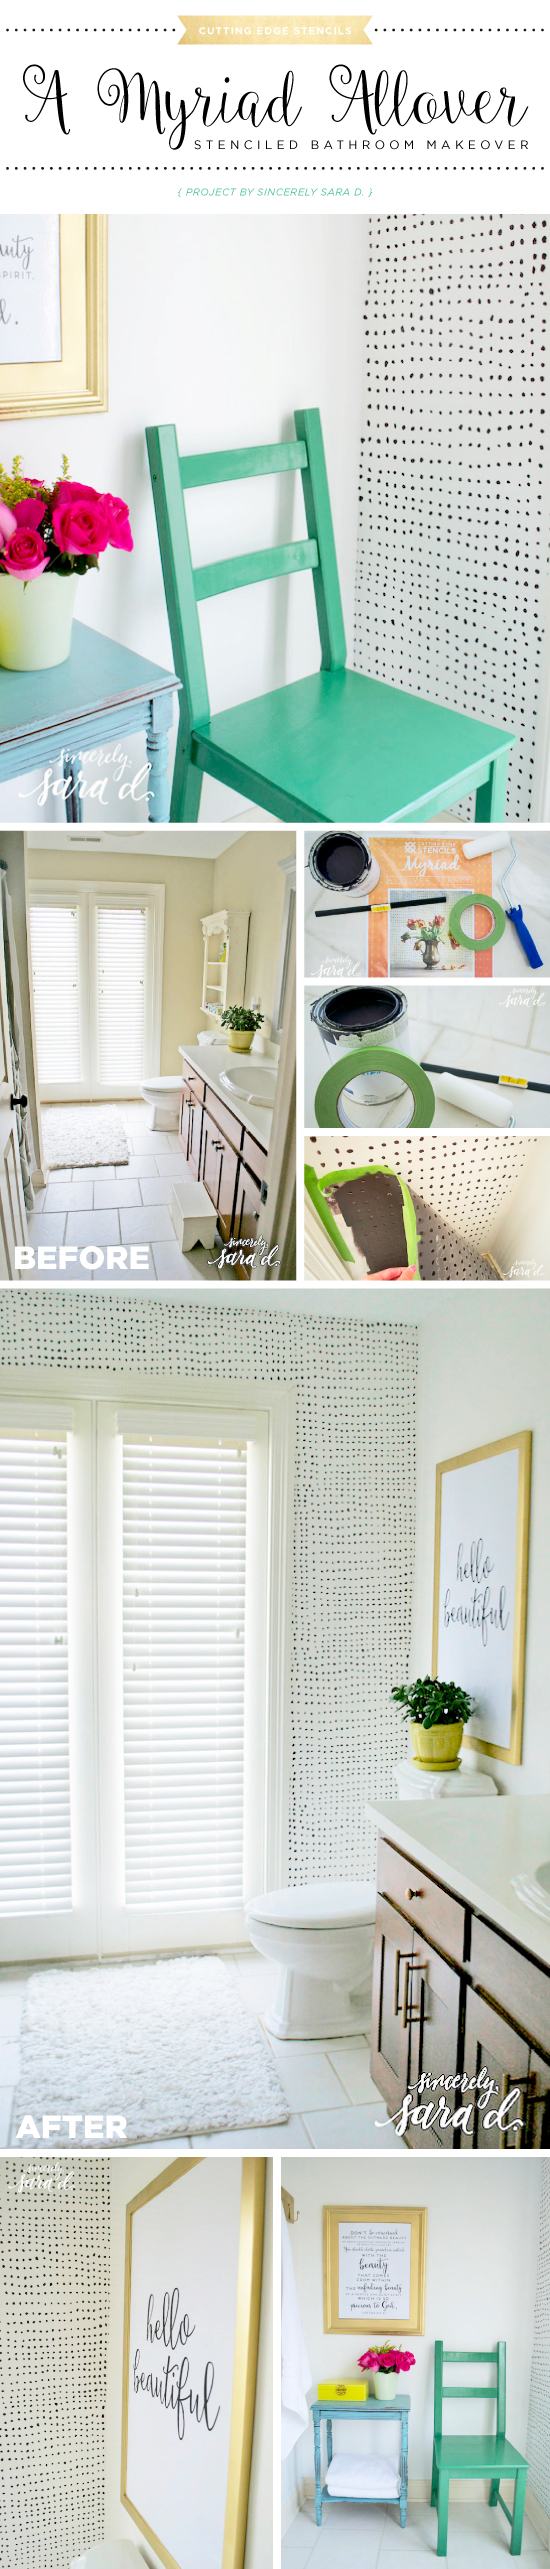 Cutting Edge Stencils shares a DIY stenciled bathroom accent wall using the Myriad Allover stencil pattern in black and white. http://www.cuttingedgestencils.com/myriad-modern-wall-pattern-stencil.html